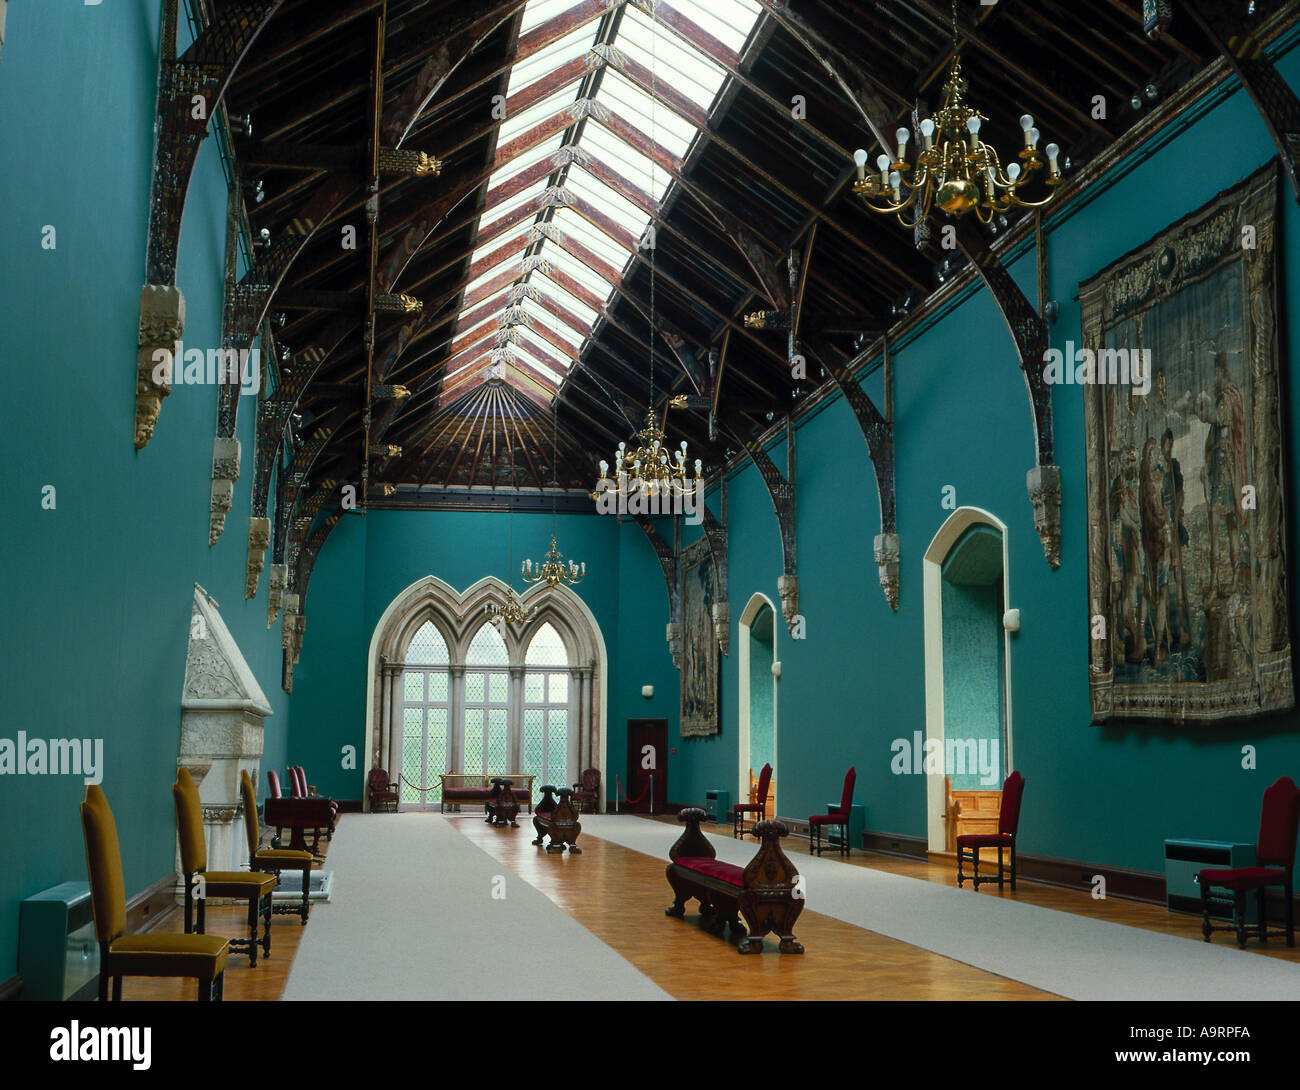 Kilkenny Castle Interior Ireland